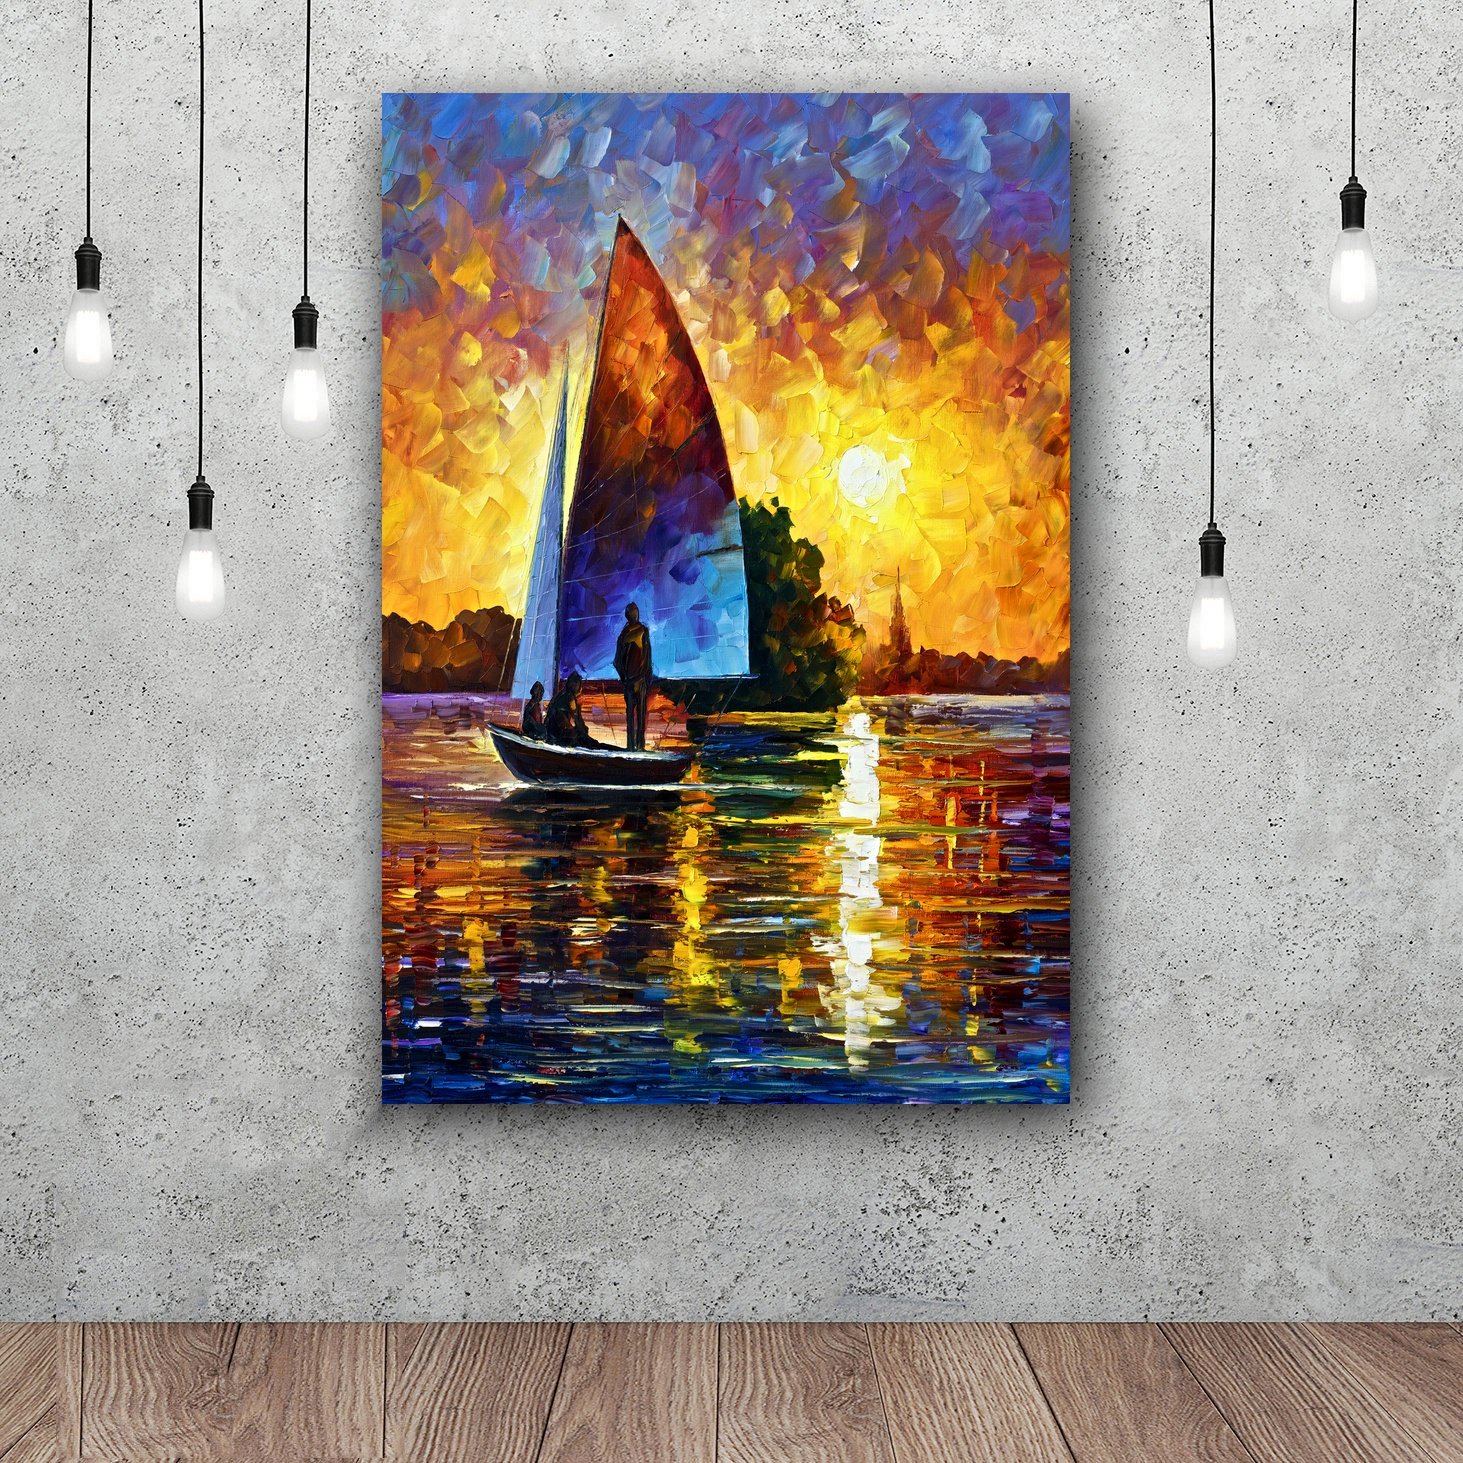 Cityscape Seascape Landscape Oil Painting Print on Canvas Wall Art poster Home Decor  Room Office Paintings